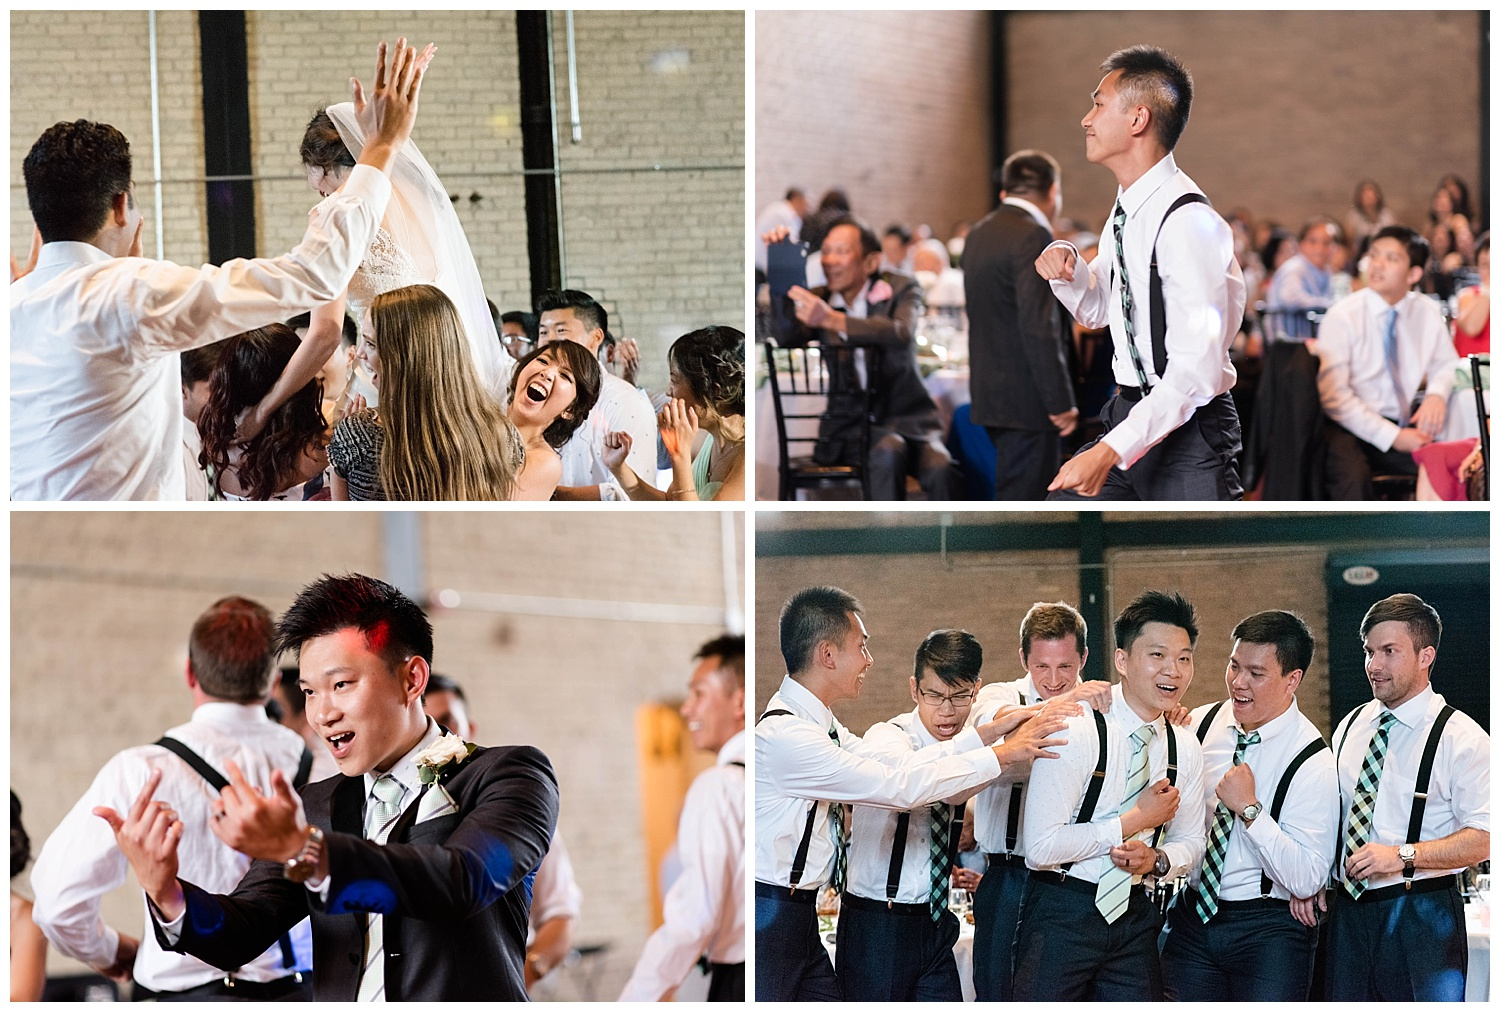 Weddings_by_Raisa_Photography_Saint_Mary_Magdalen_New_Vintage_Grand_Rapids_Michigan_Wedding_Photographer_0125.jpg